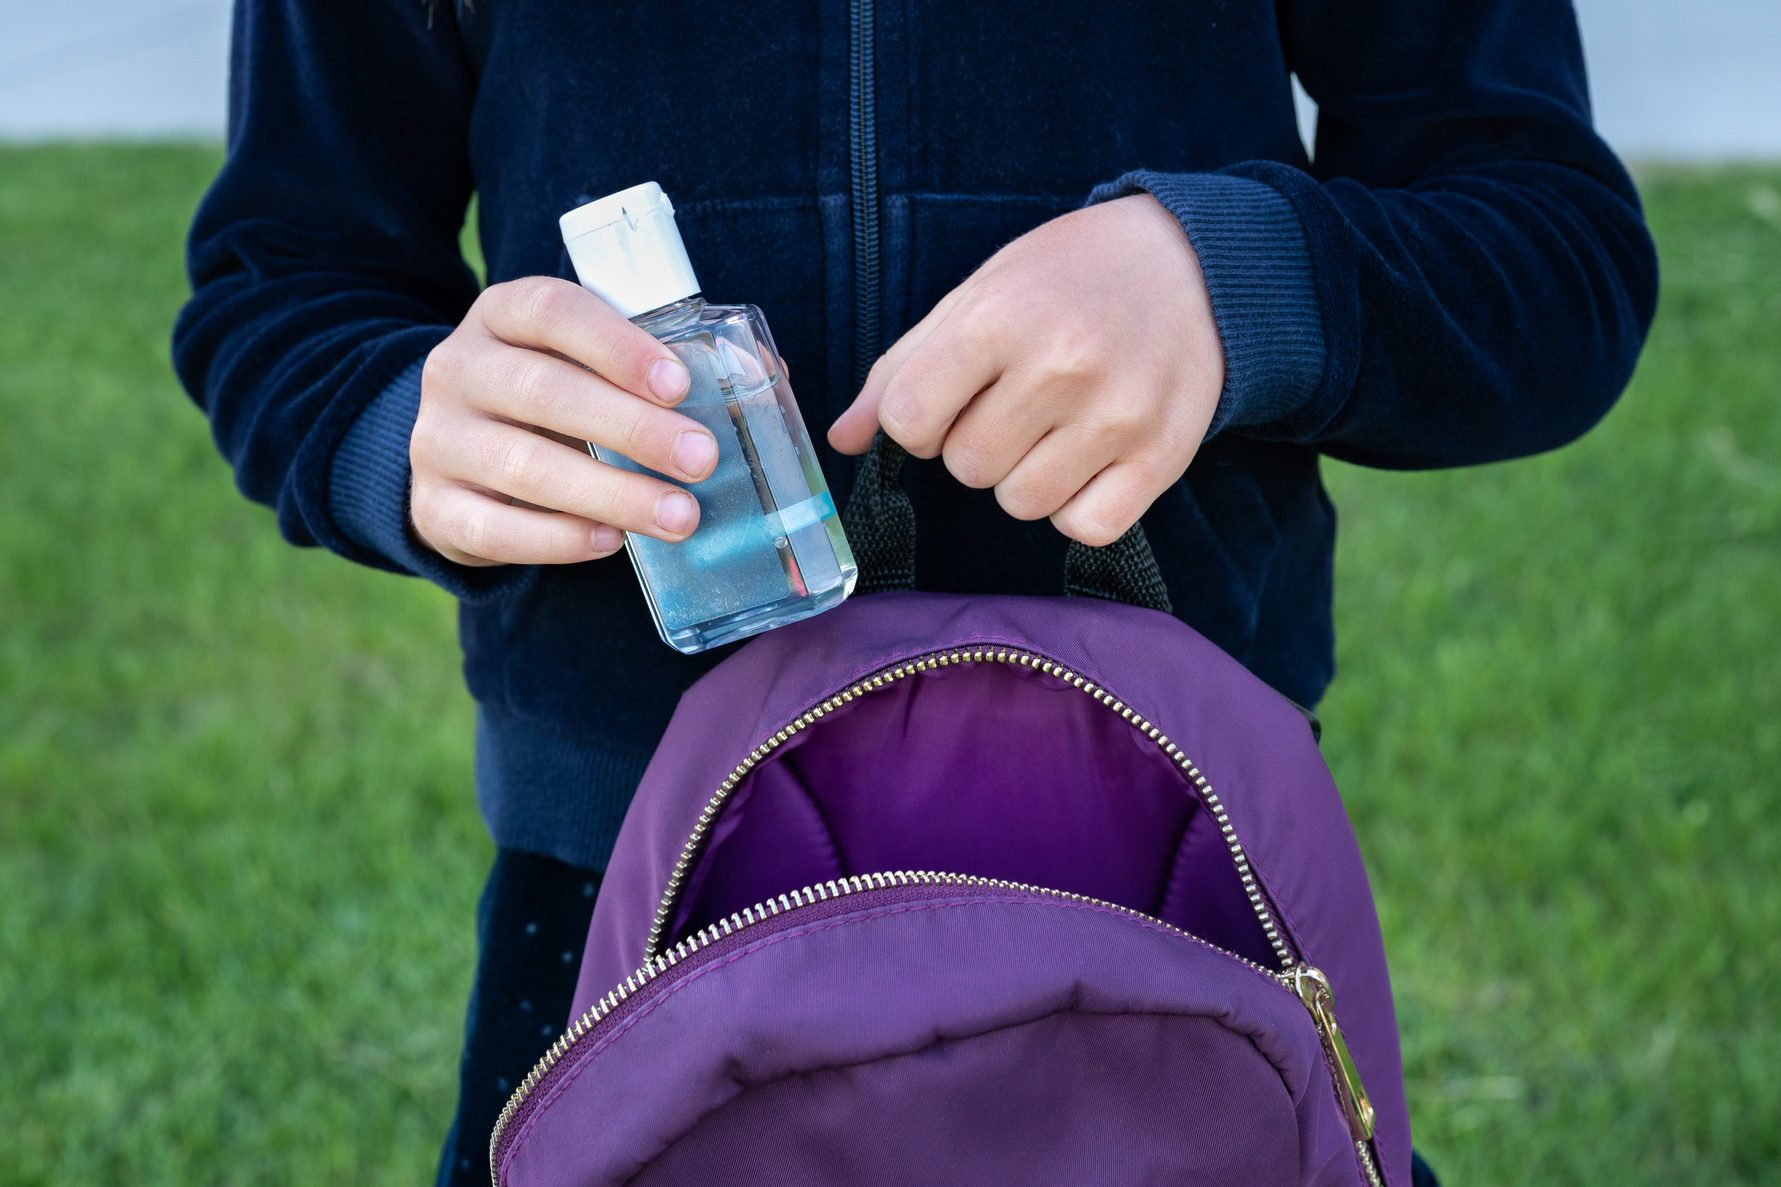 Putting hand sanitizer into backpack